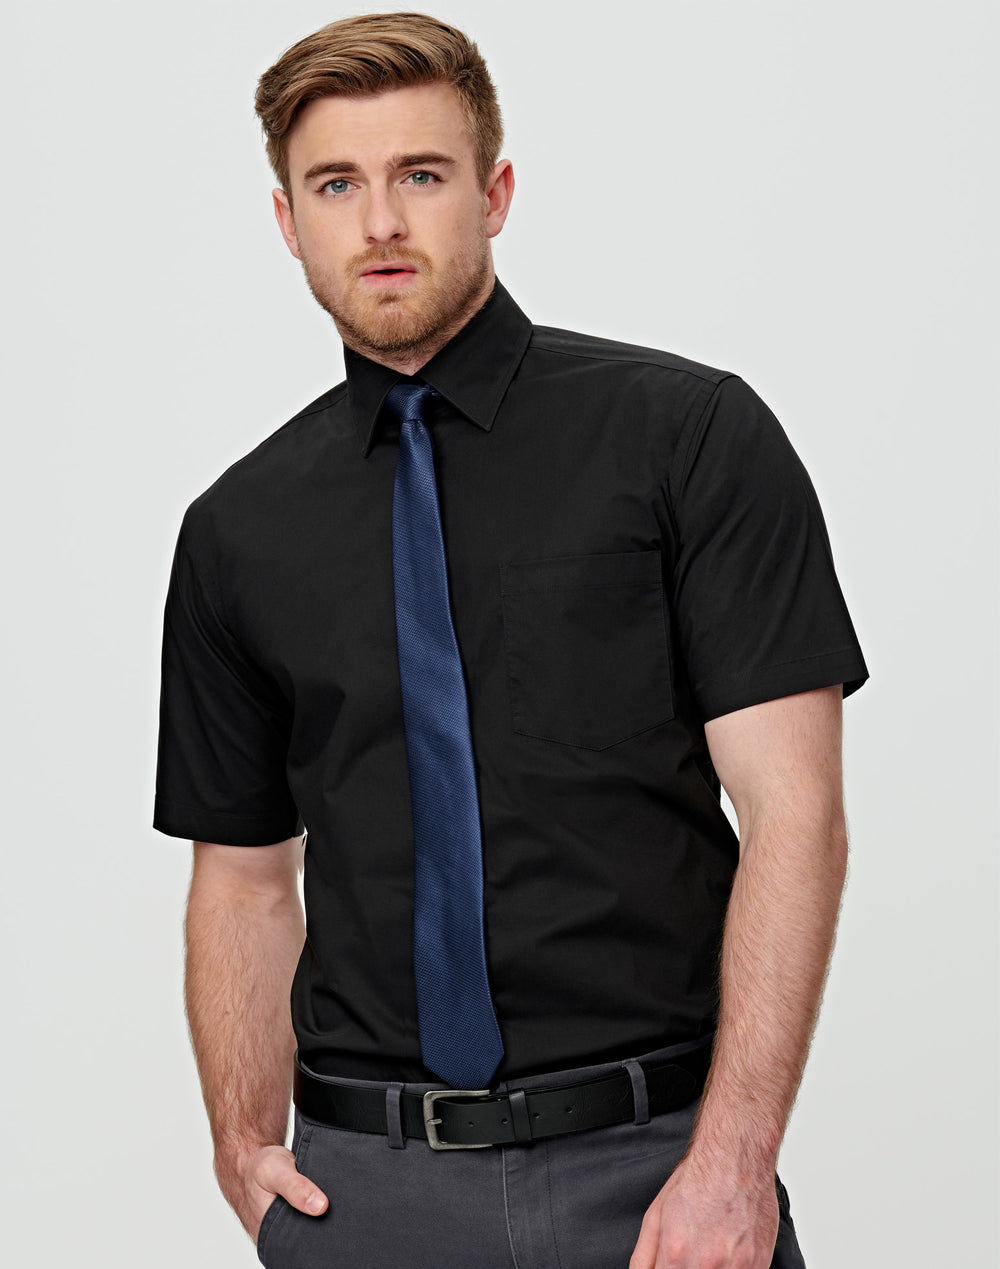 [M7020S] Men's Cotton/Poly Stretch S/S Shirt